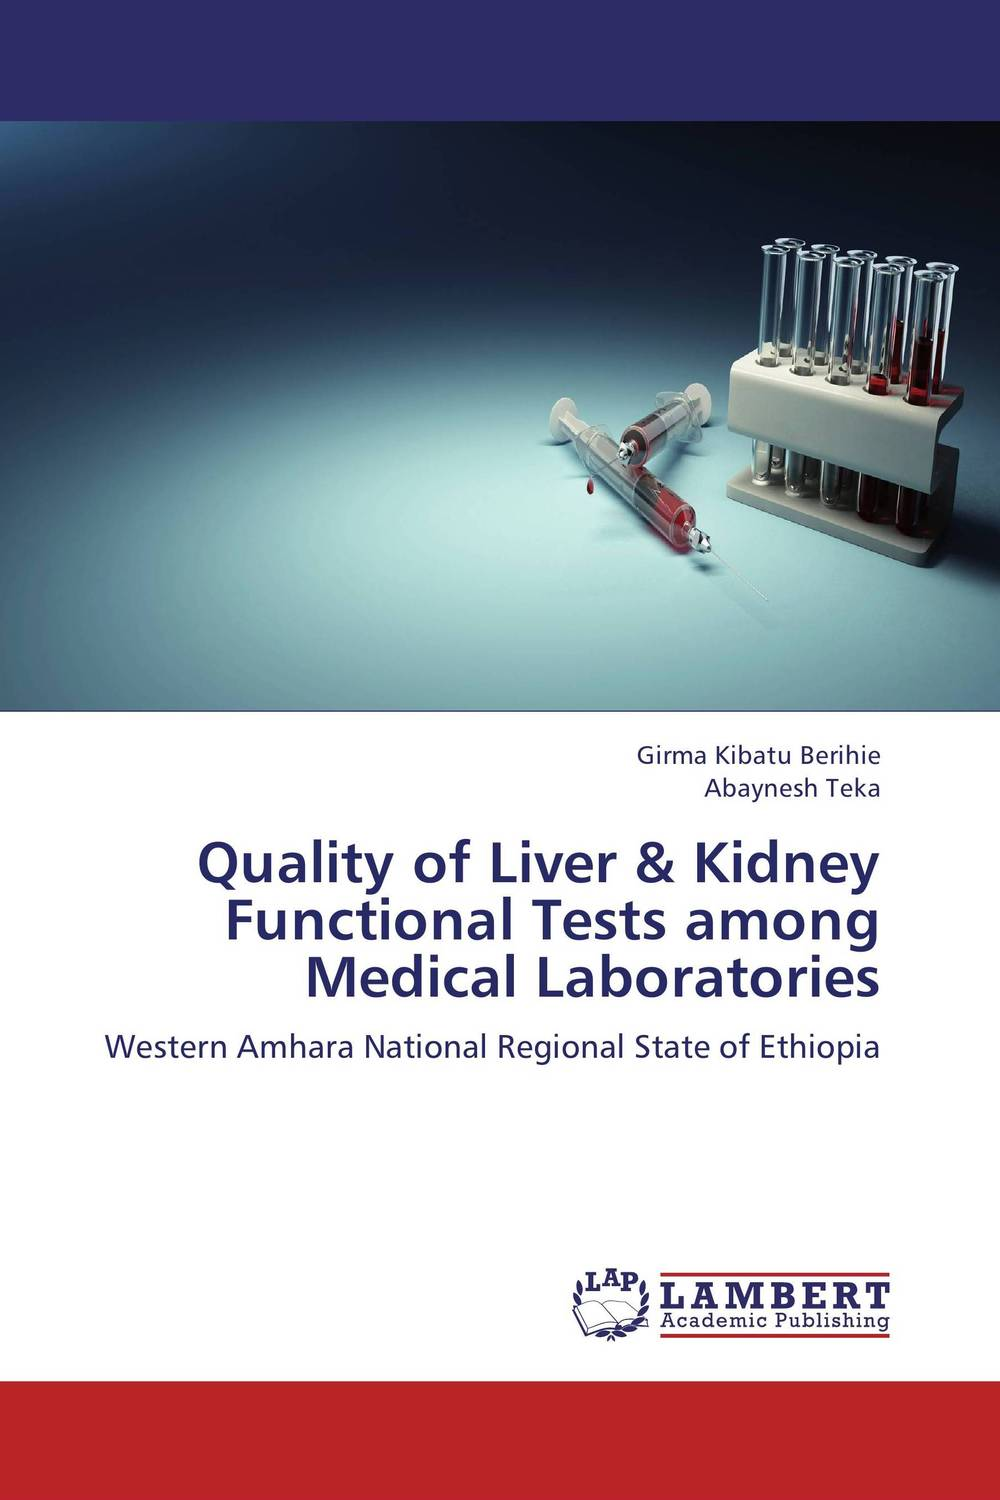 Quality of Liver & Kidney Functional Tests among Medical Laboratories 3 1 human anatomical kidney structure dissection organ medical teach model school hospital hi q